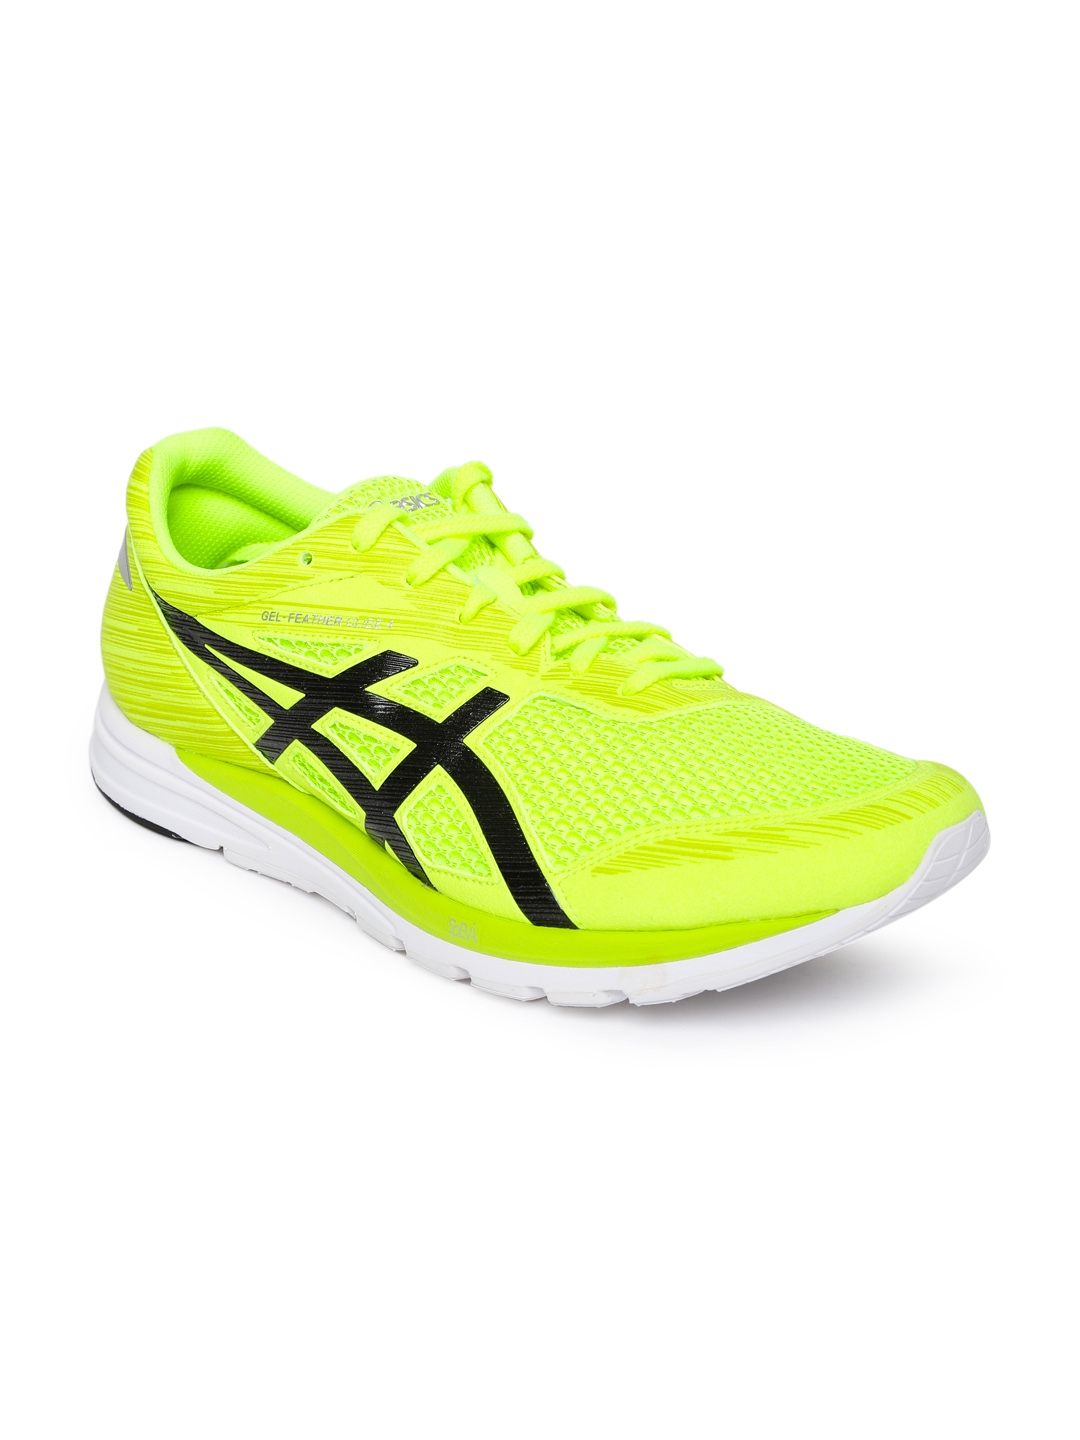 199f4afec01c4 Buy ASICS Men Fluorescent Green Running Shoes GEL FEATHER GLIDE 4 ...